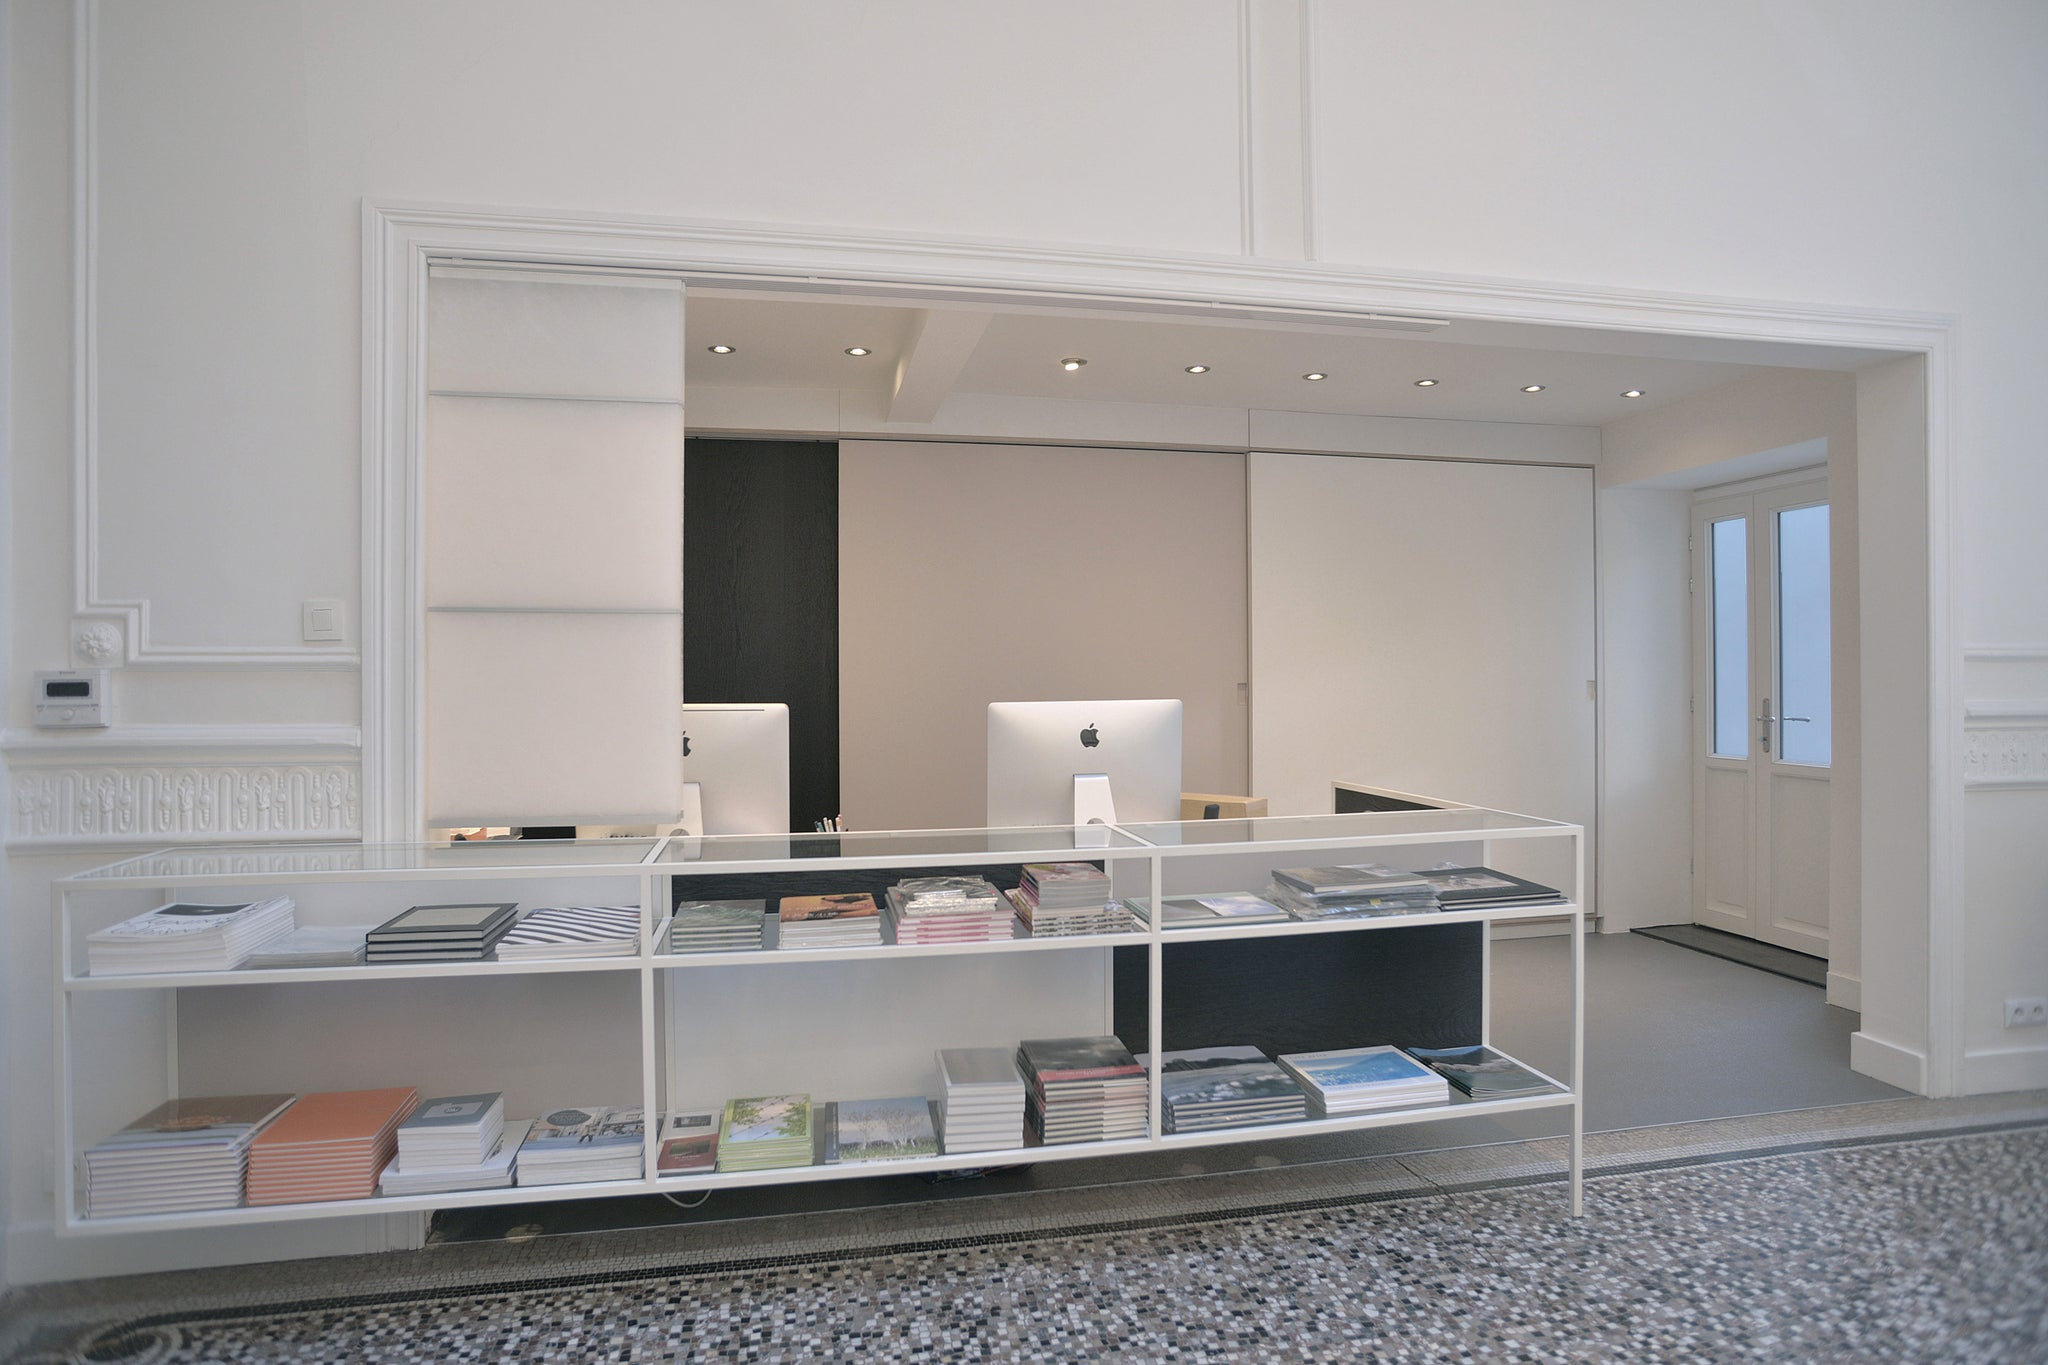 Office desk with book display rack and built-in kitchen at Ibasho Gallery, Antwerp